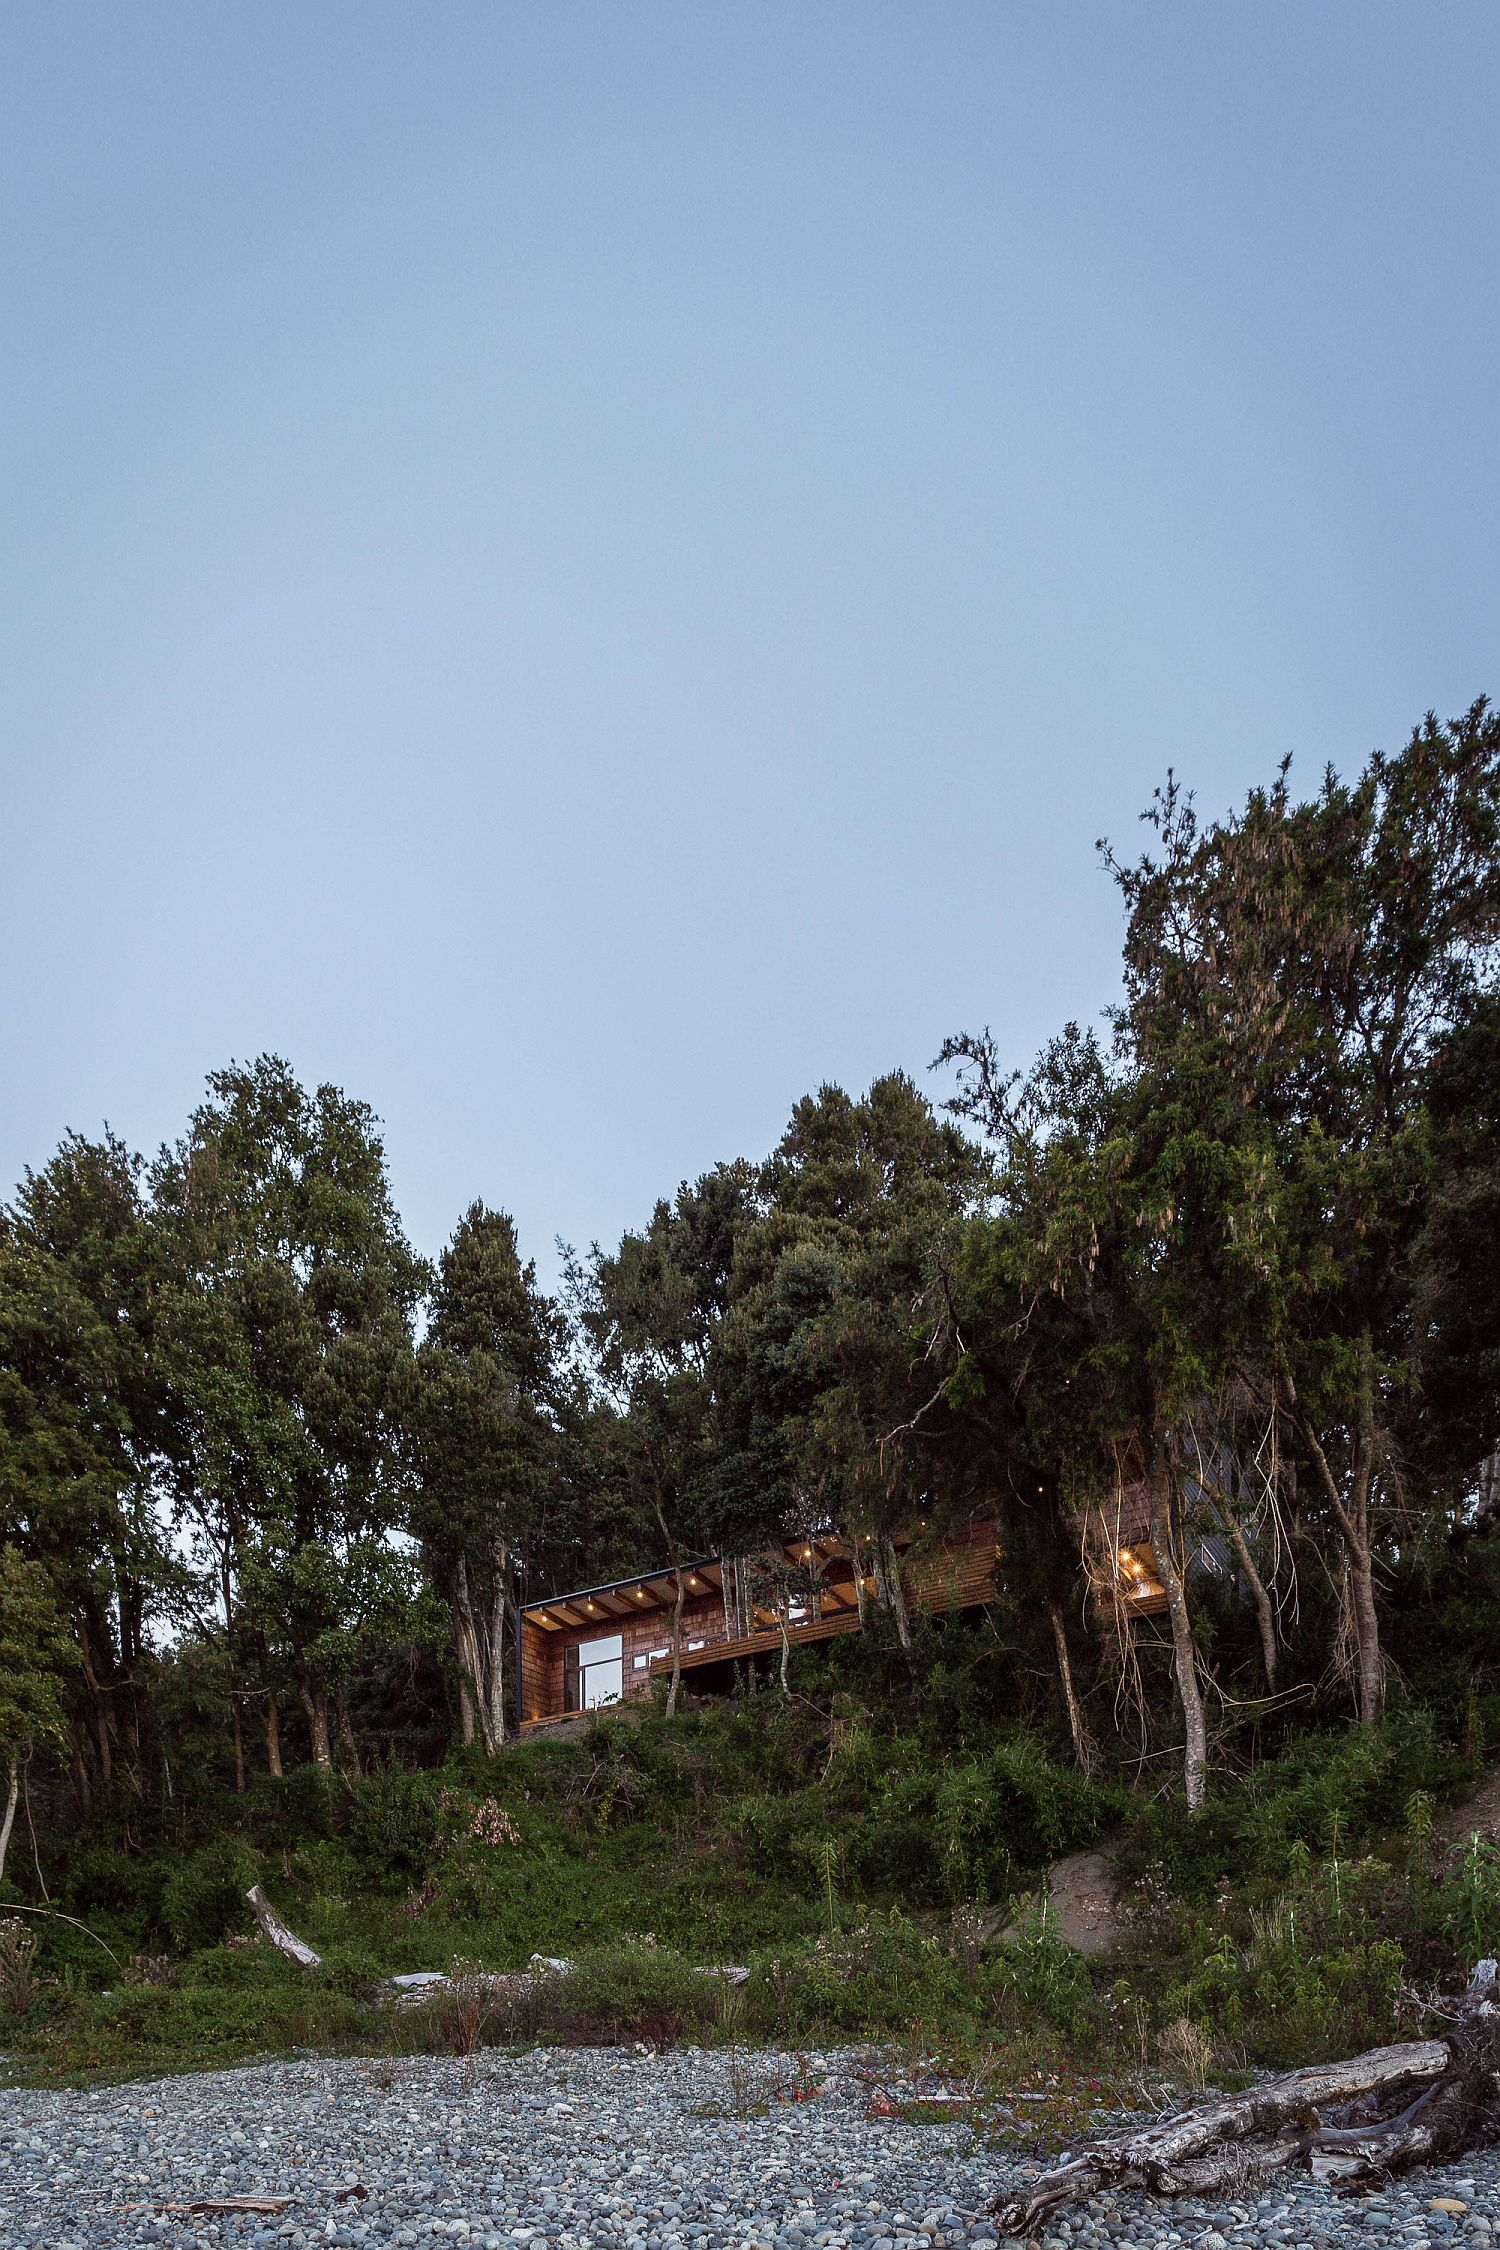 Forest Lake bank and a volcano in the distance give Casa LM a stunning visual appeal